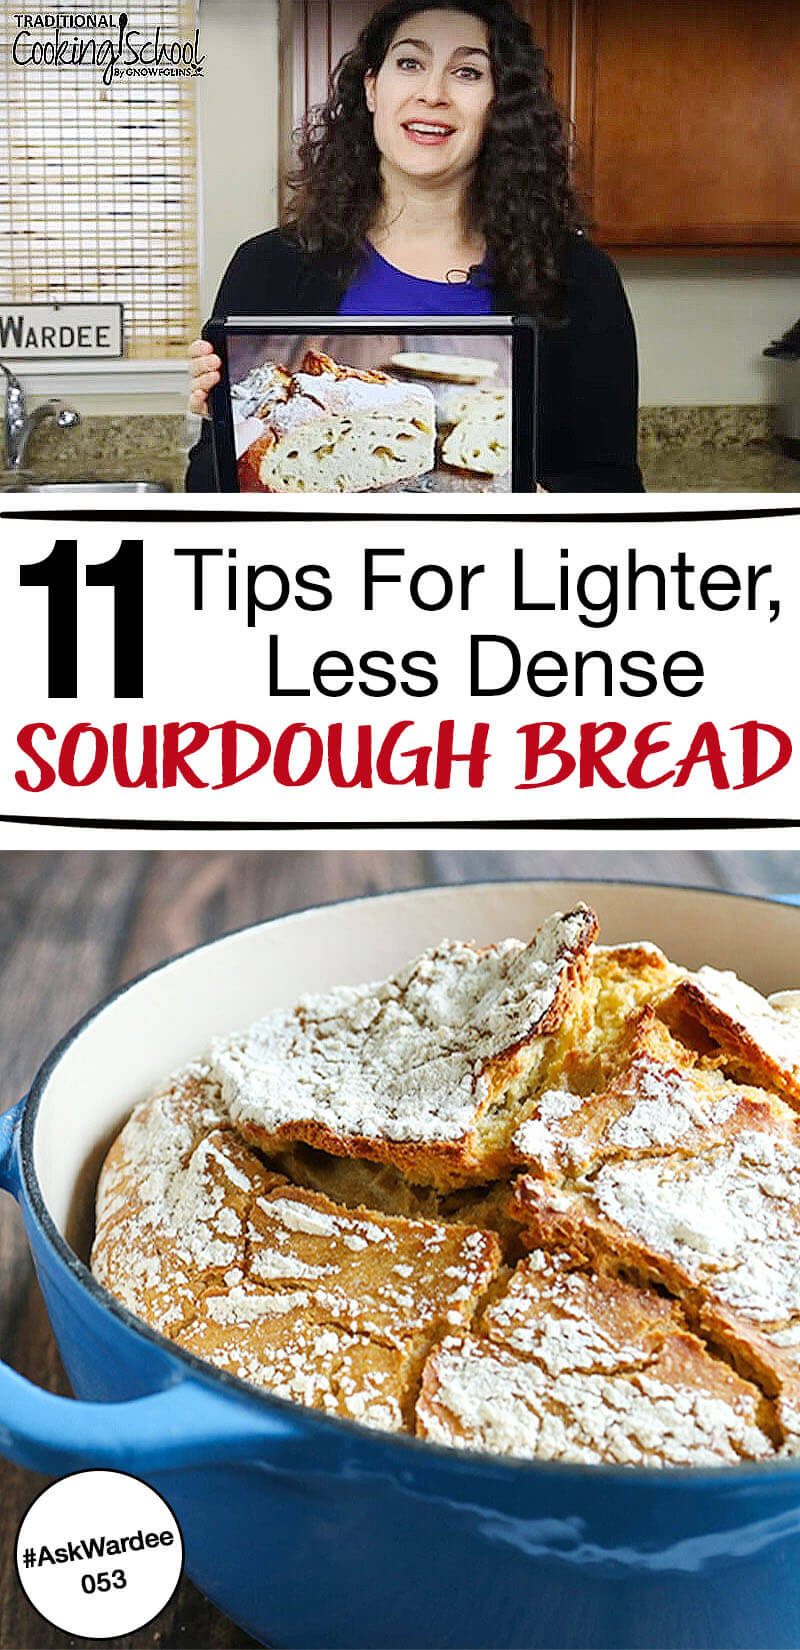 """Why, oh why, can't I just bake a loaf of lighter, less dense sourdough bread?"" This is something that every sourdough baker faces...including me. Watch, listen, or read for my 11 tips for less dense sourdough bread! 